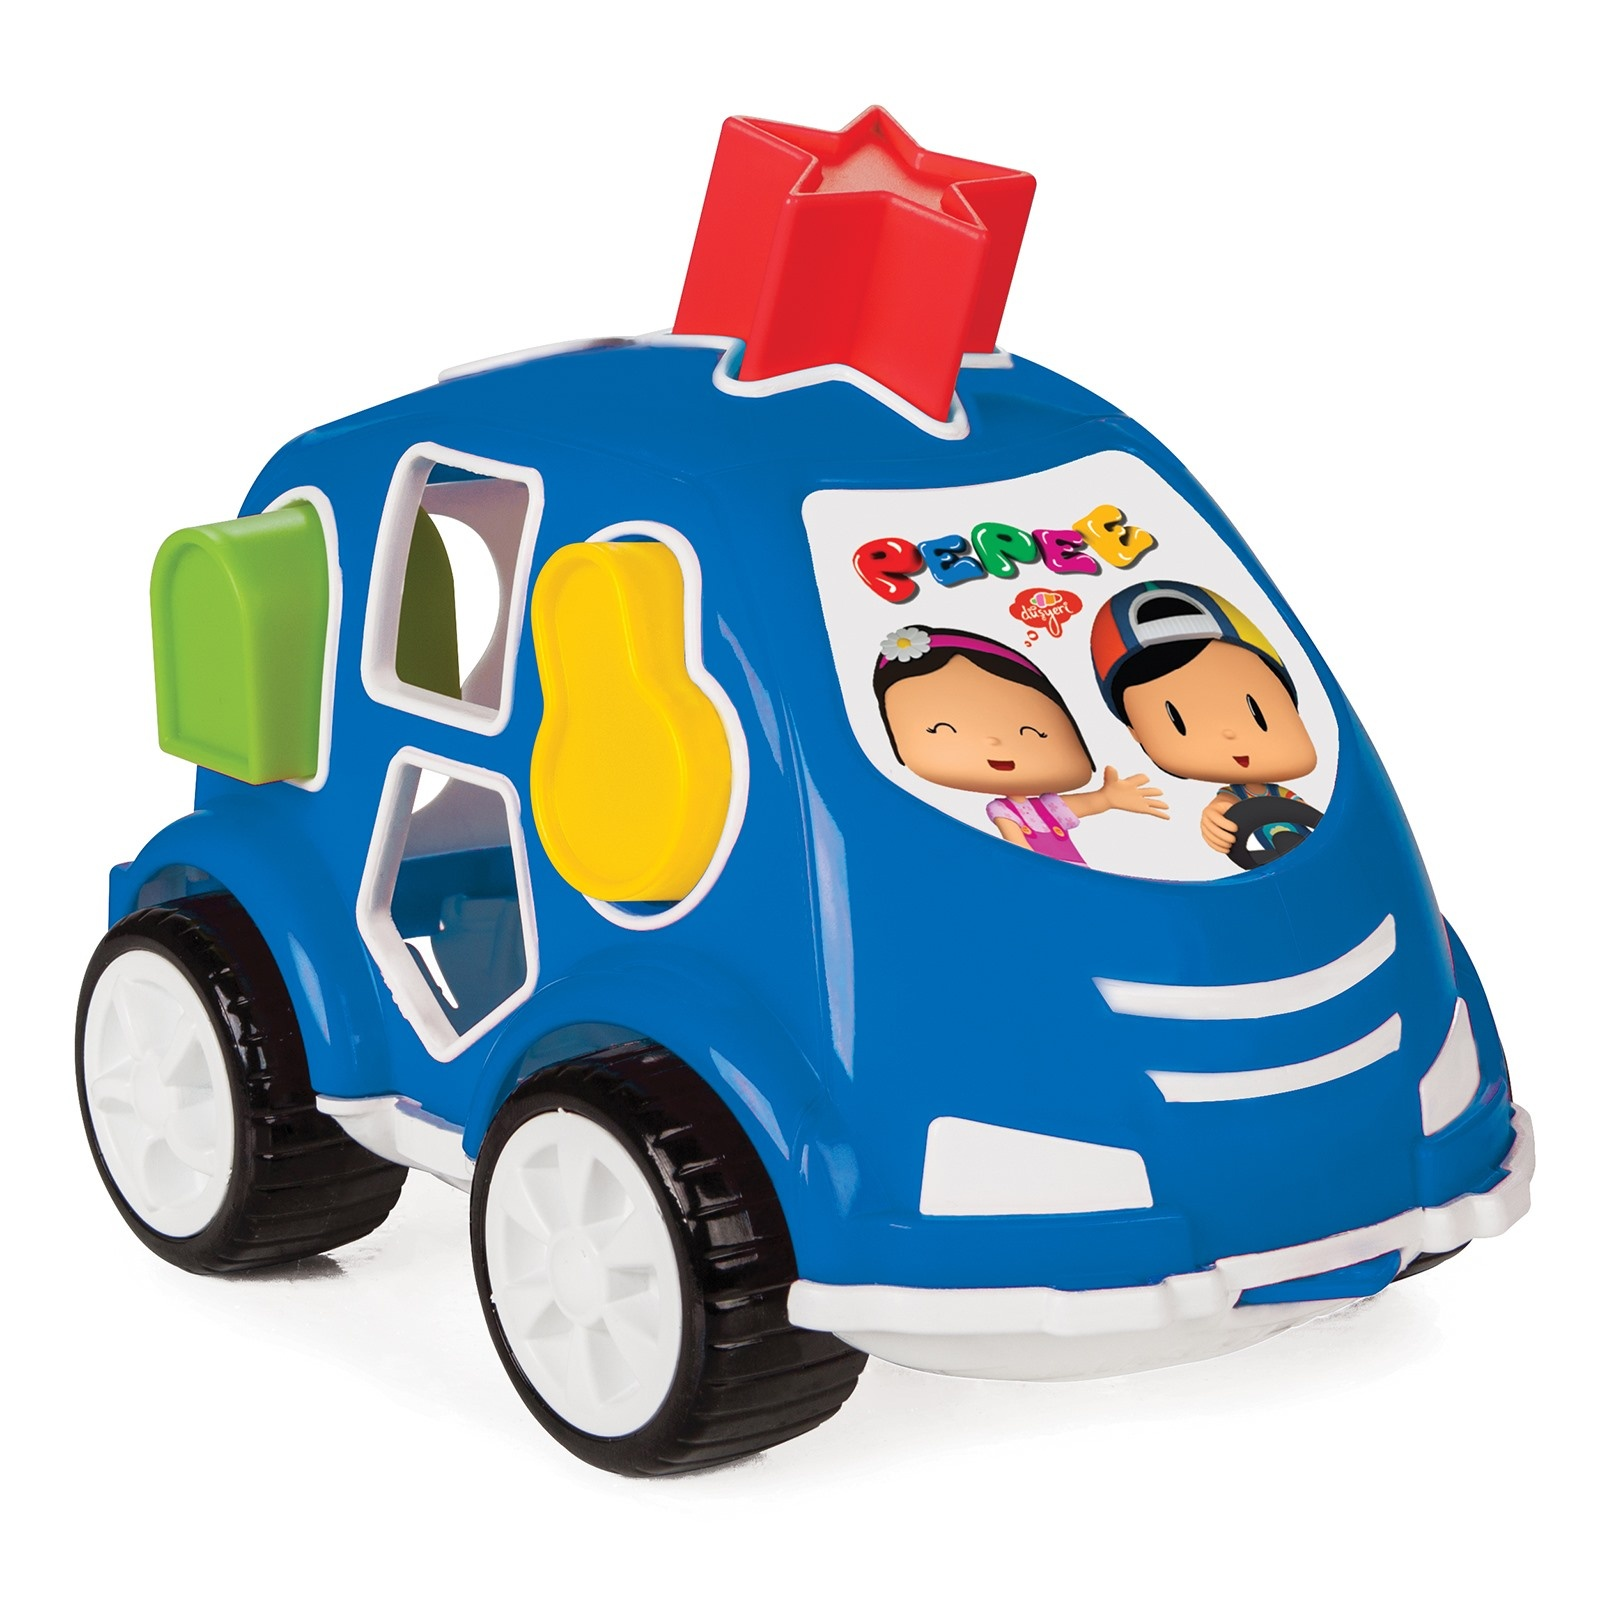 Ebebek Pepee Educational Car Toy